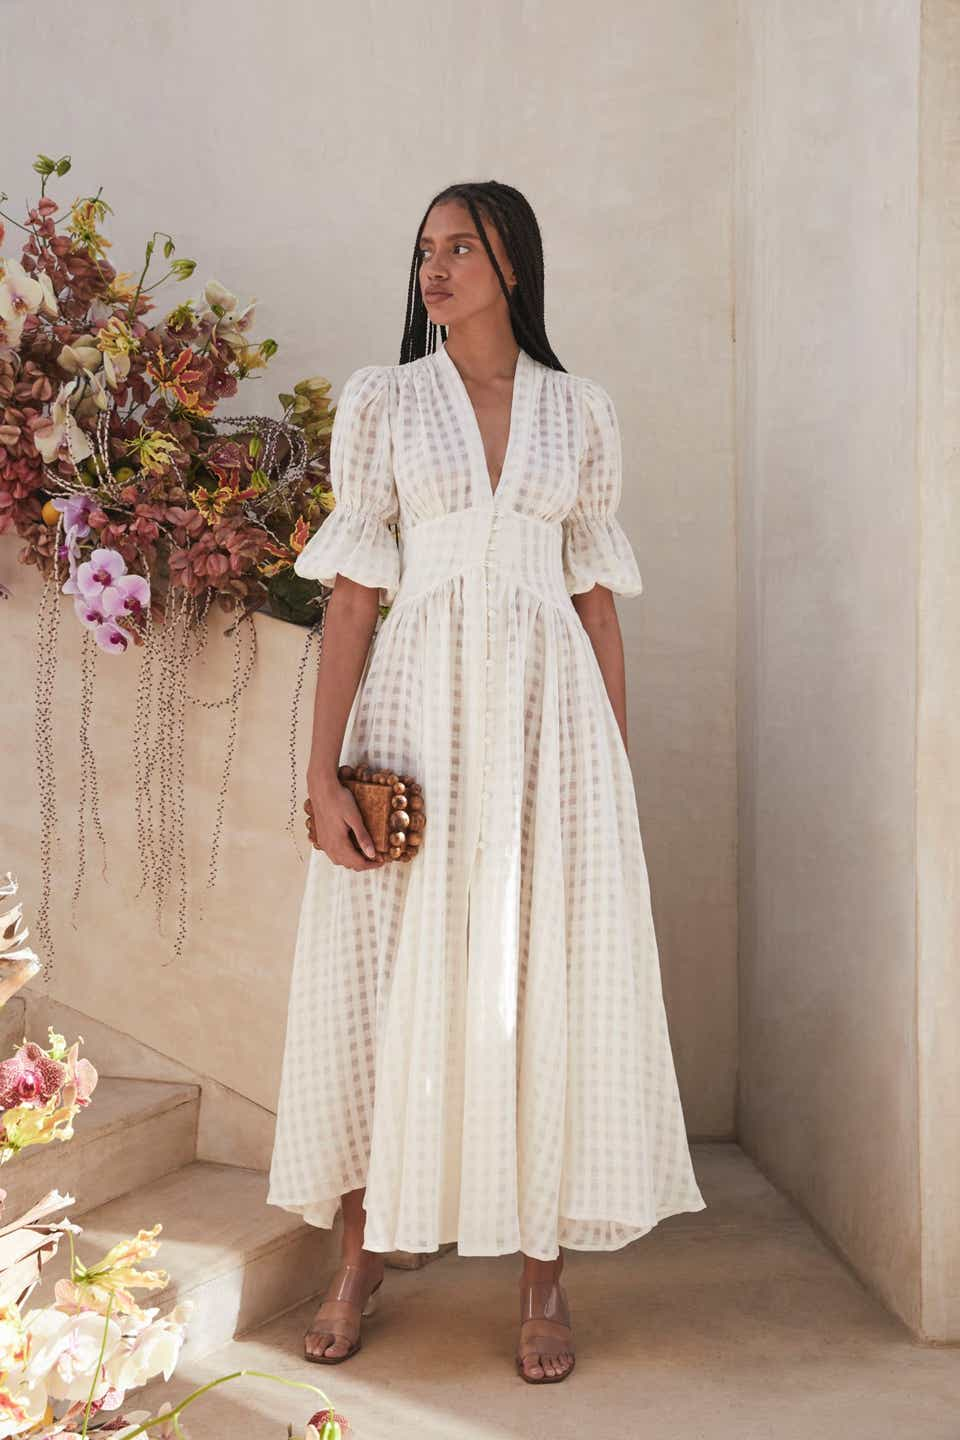 Courthouse Wedding Dresses For The 20 Bride